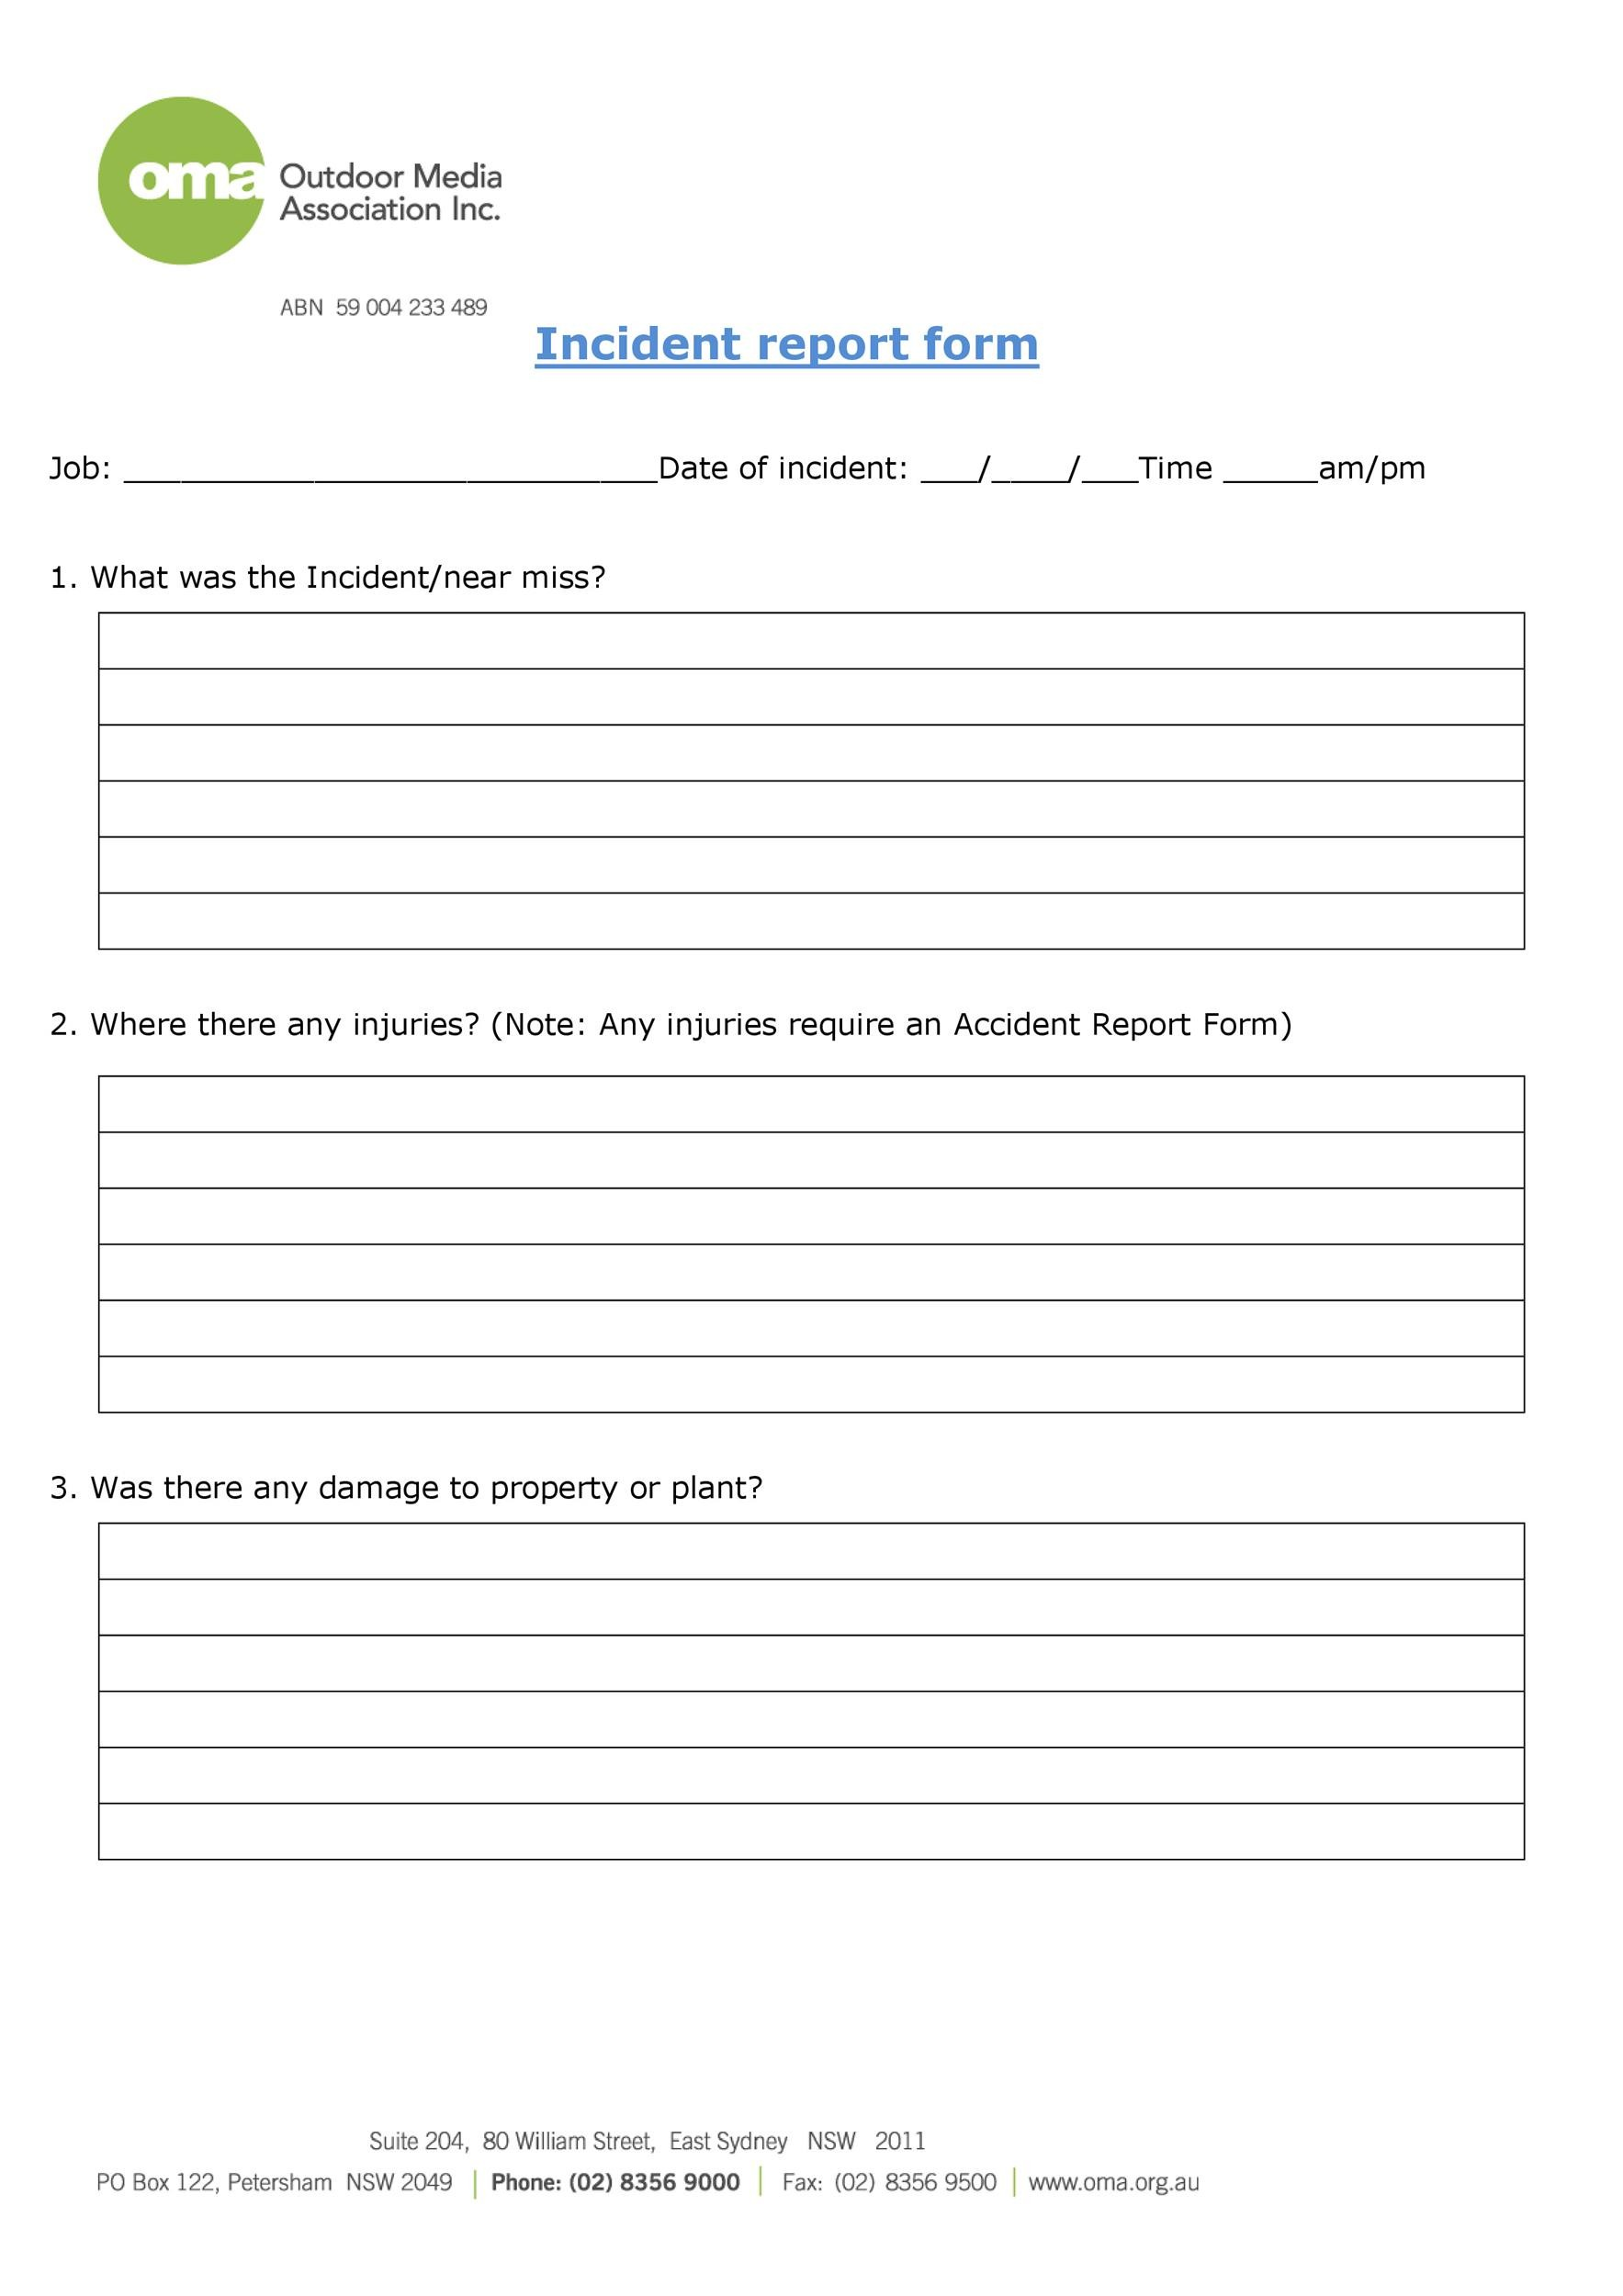 60+ Incident Report Template Employee, Police, Generic - Template Lab - Accident Report Template